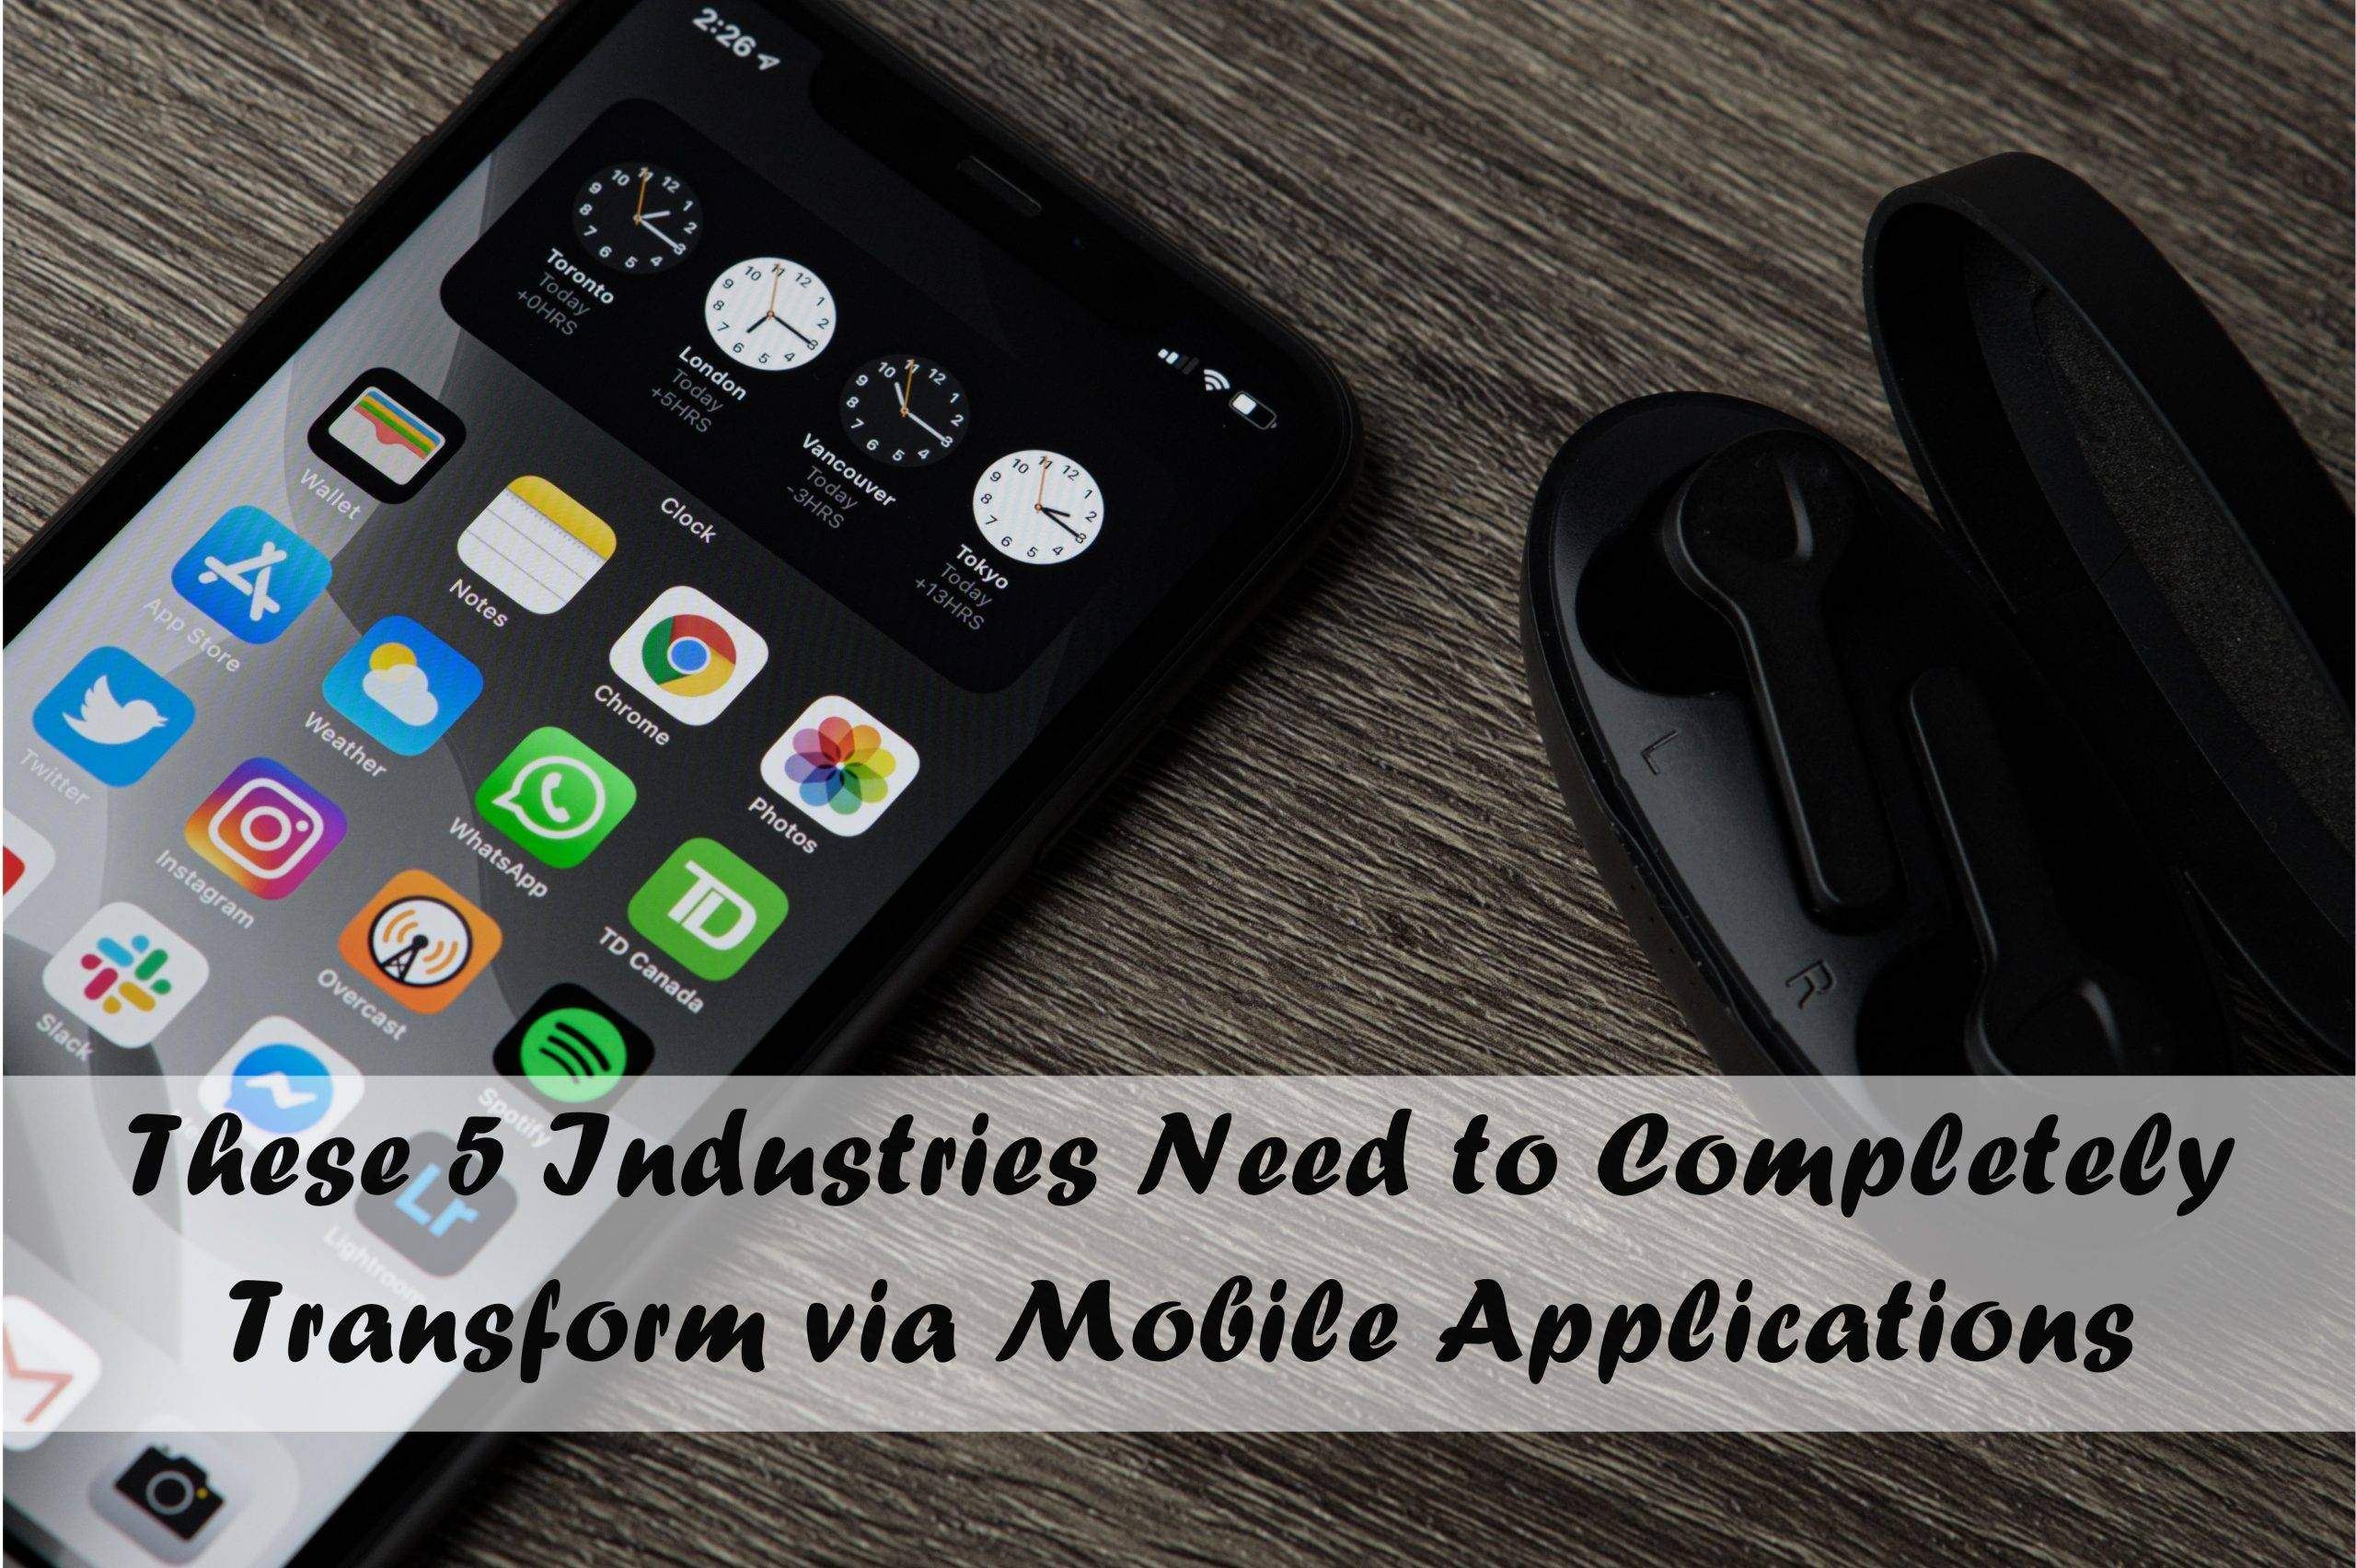 These 5 Industries Need to Completely Transform via Mobile Applications